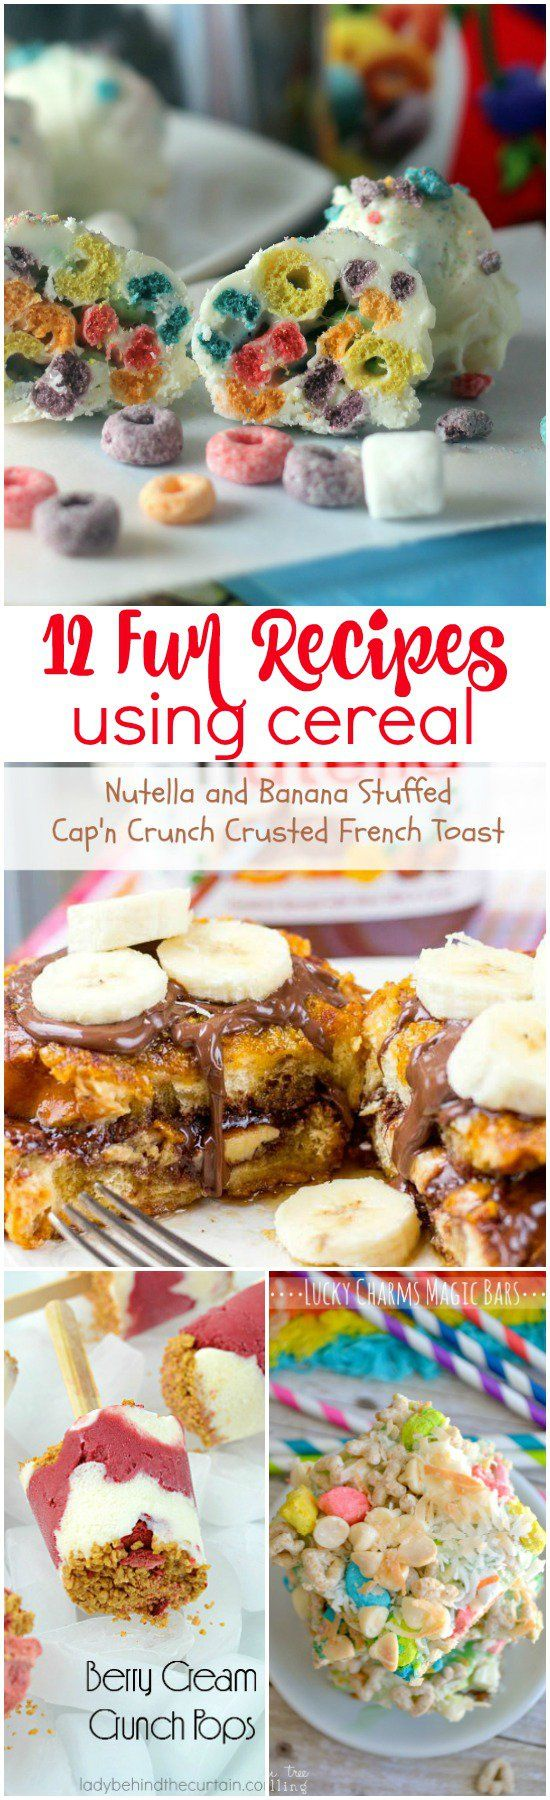 12 Fun Recipes using Cereal